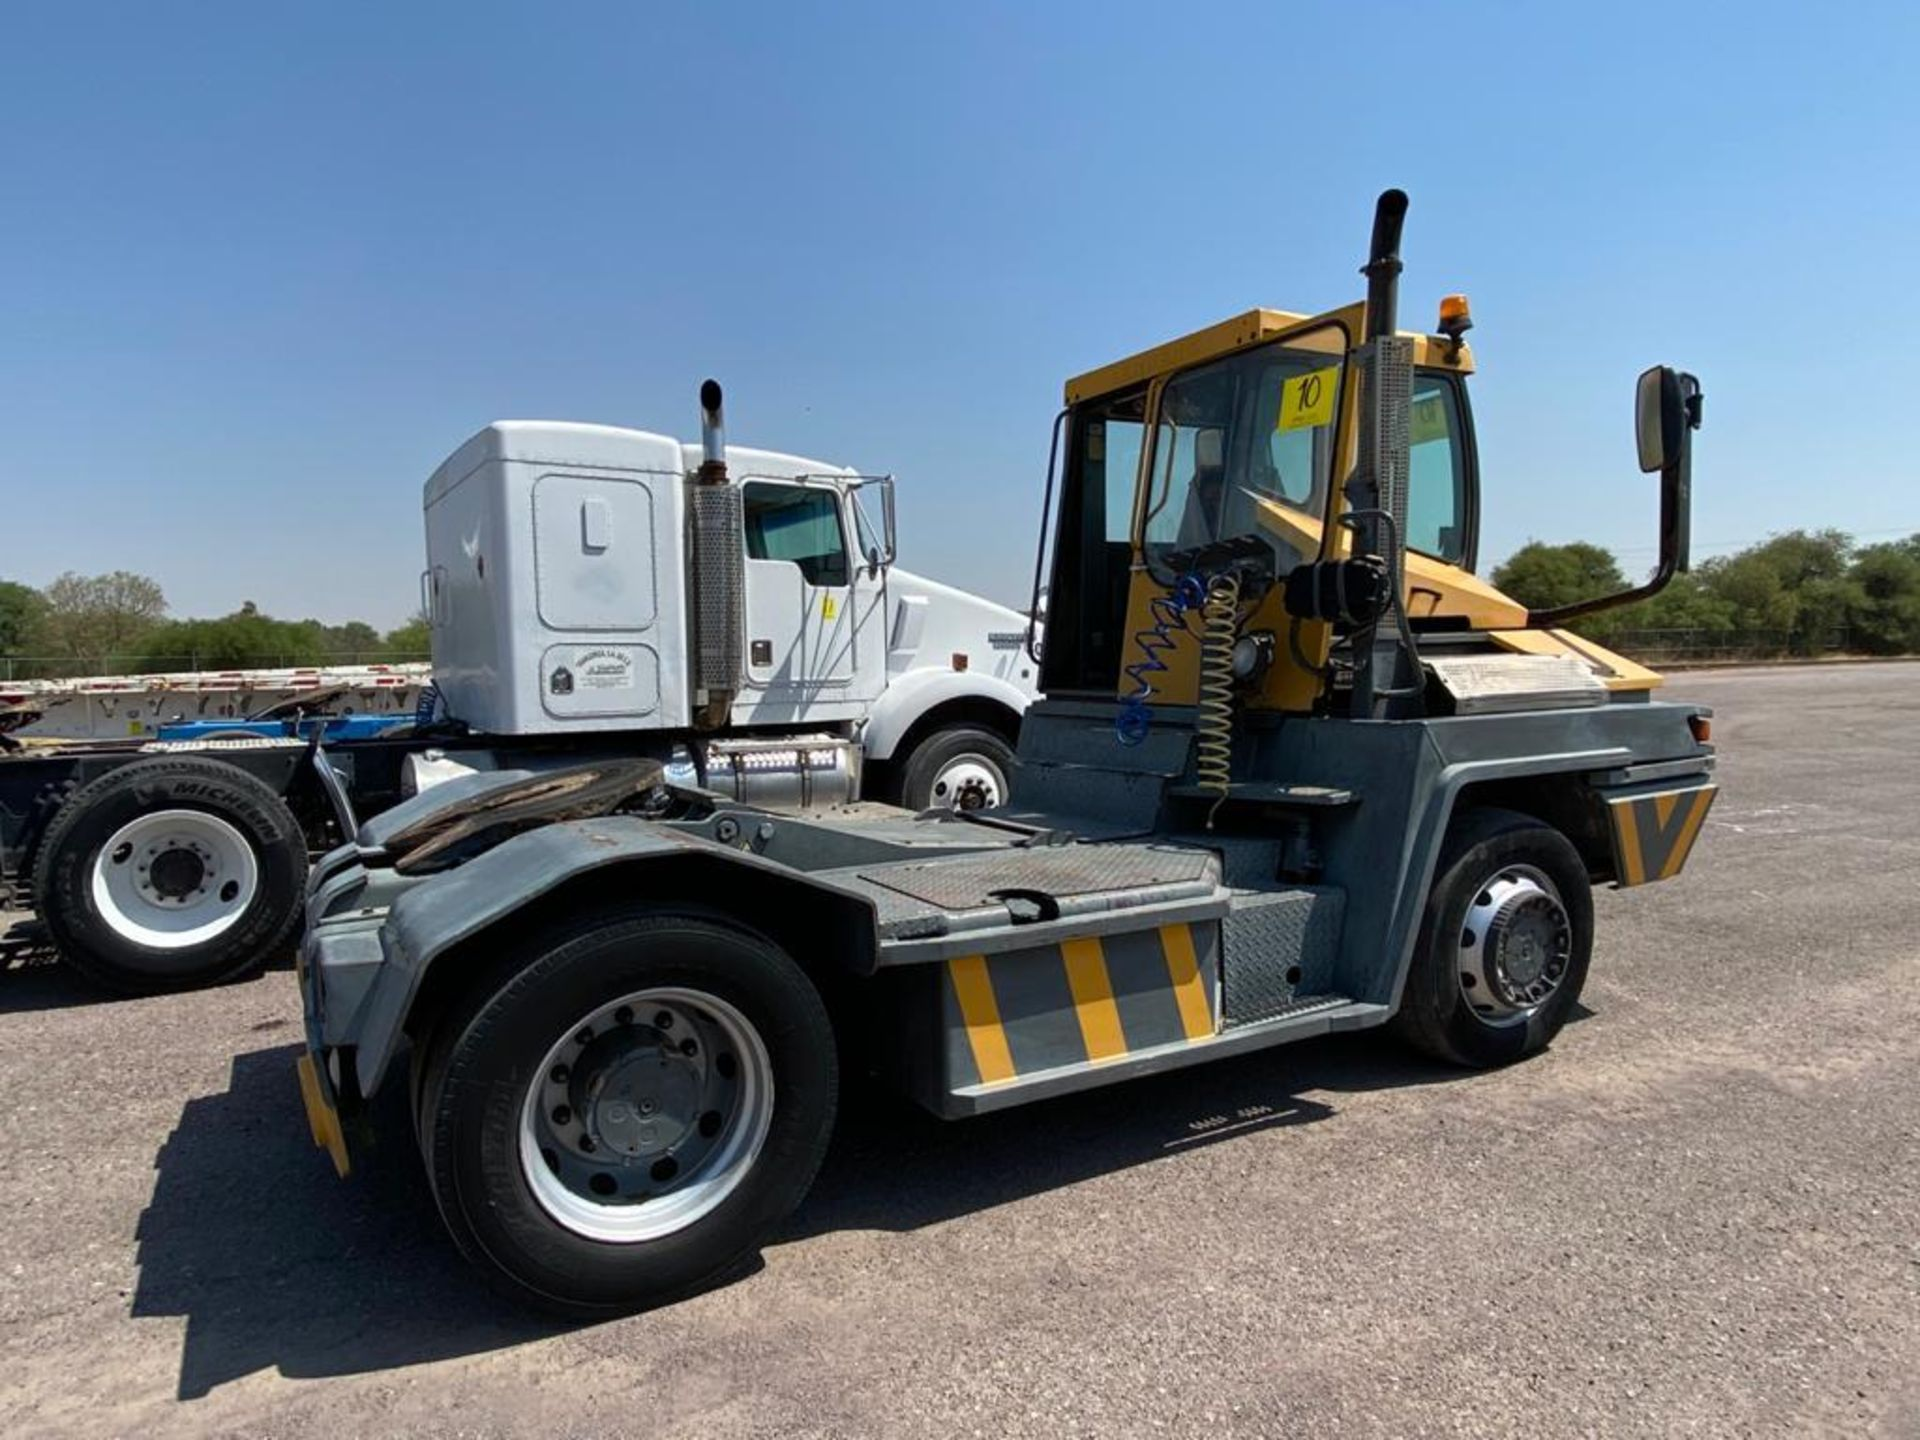 Terberg Capacity 2002 Terminal Tractor, automatic transmissio - Image 5 of 28